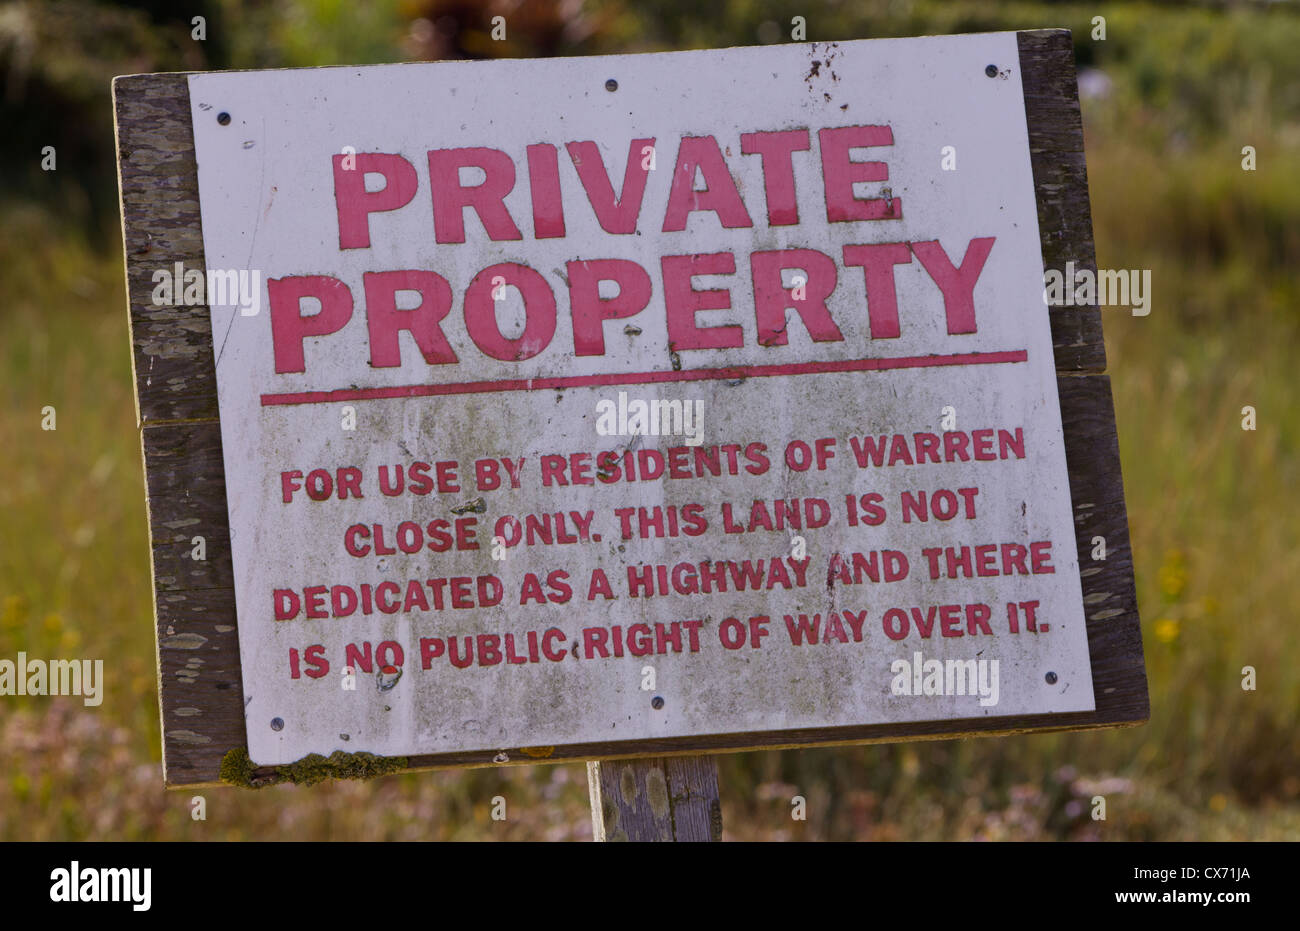 Warren Close - No public right of way sign, Hayling Island, Hampshire - Stock Image